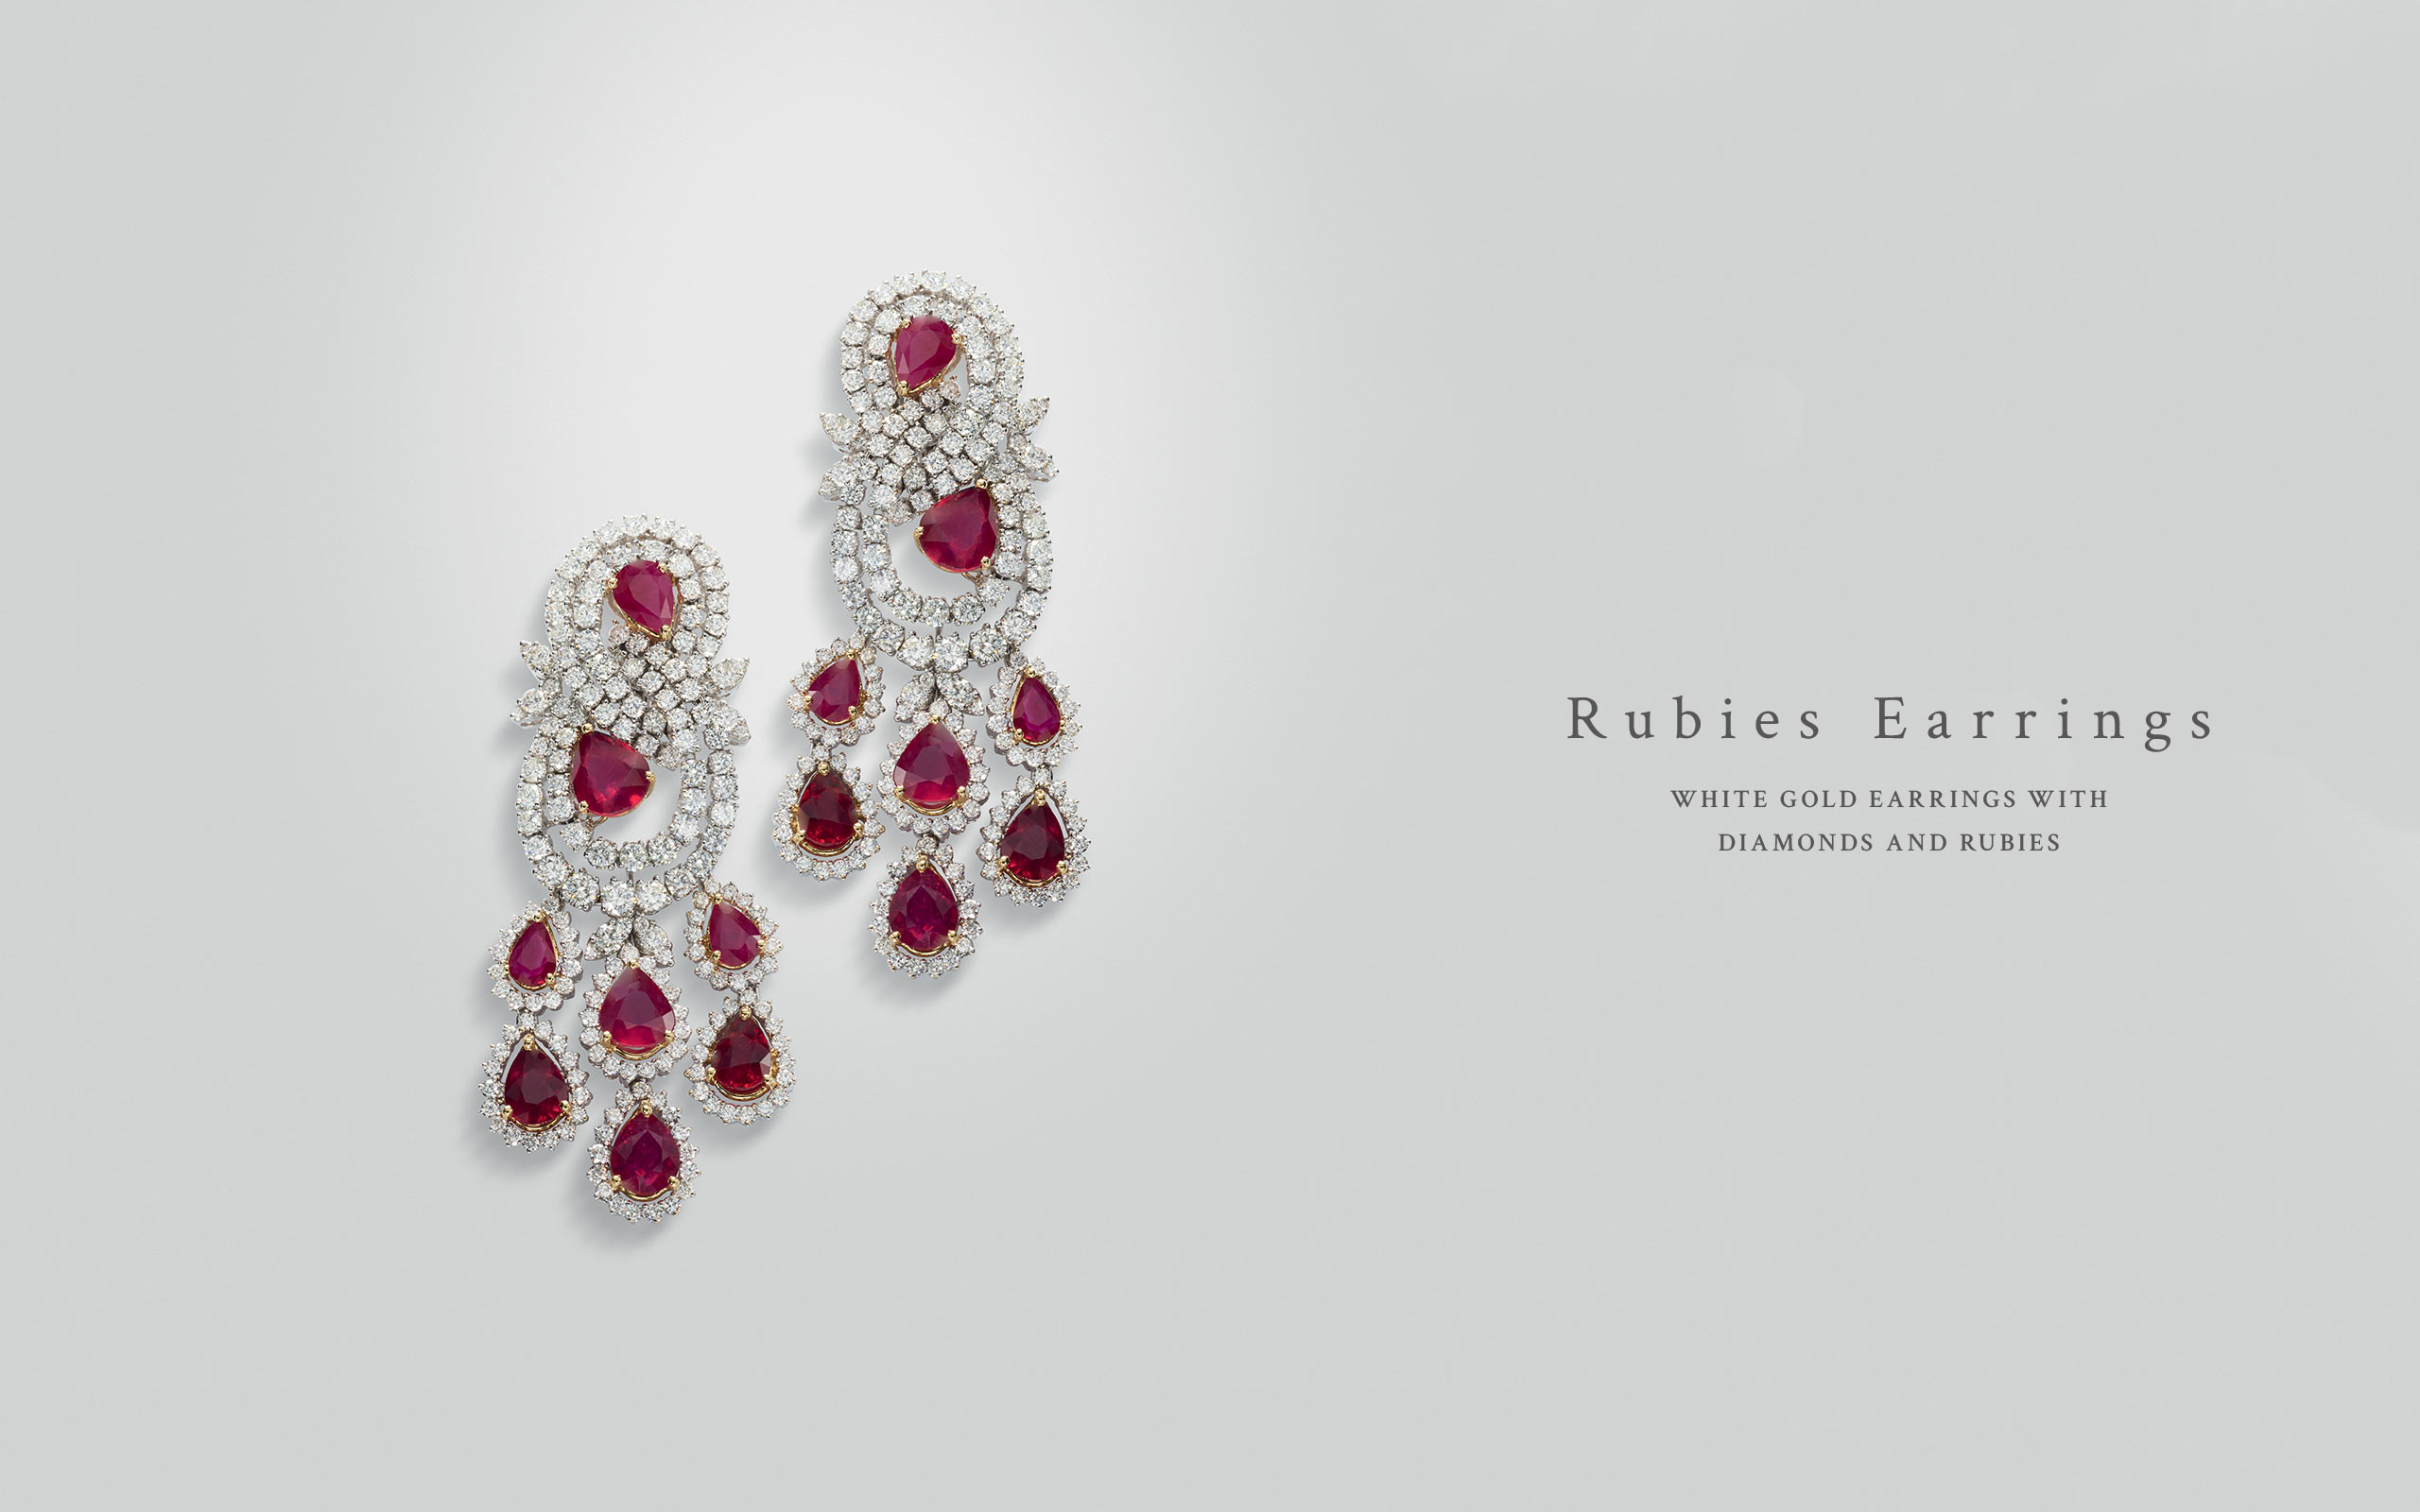 Rubies Earrings 03 | Maria Gaspari